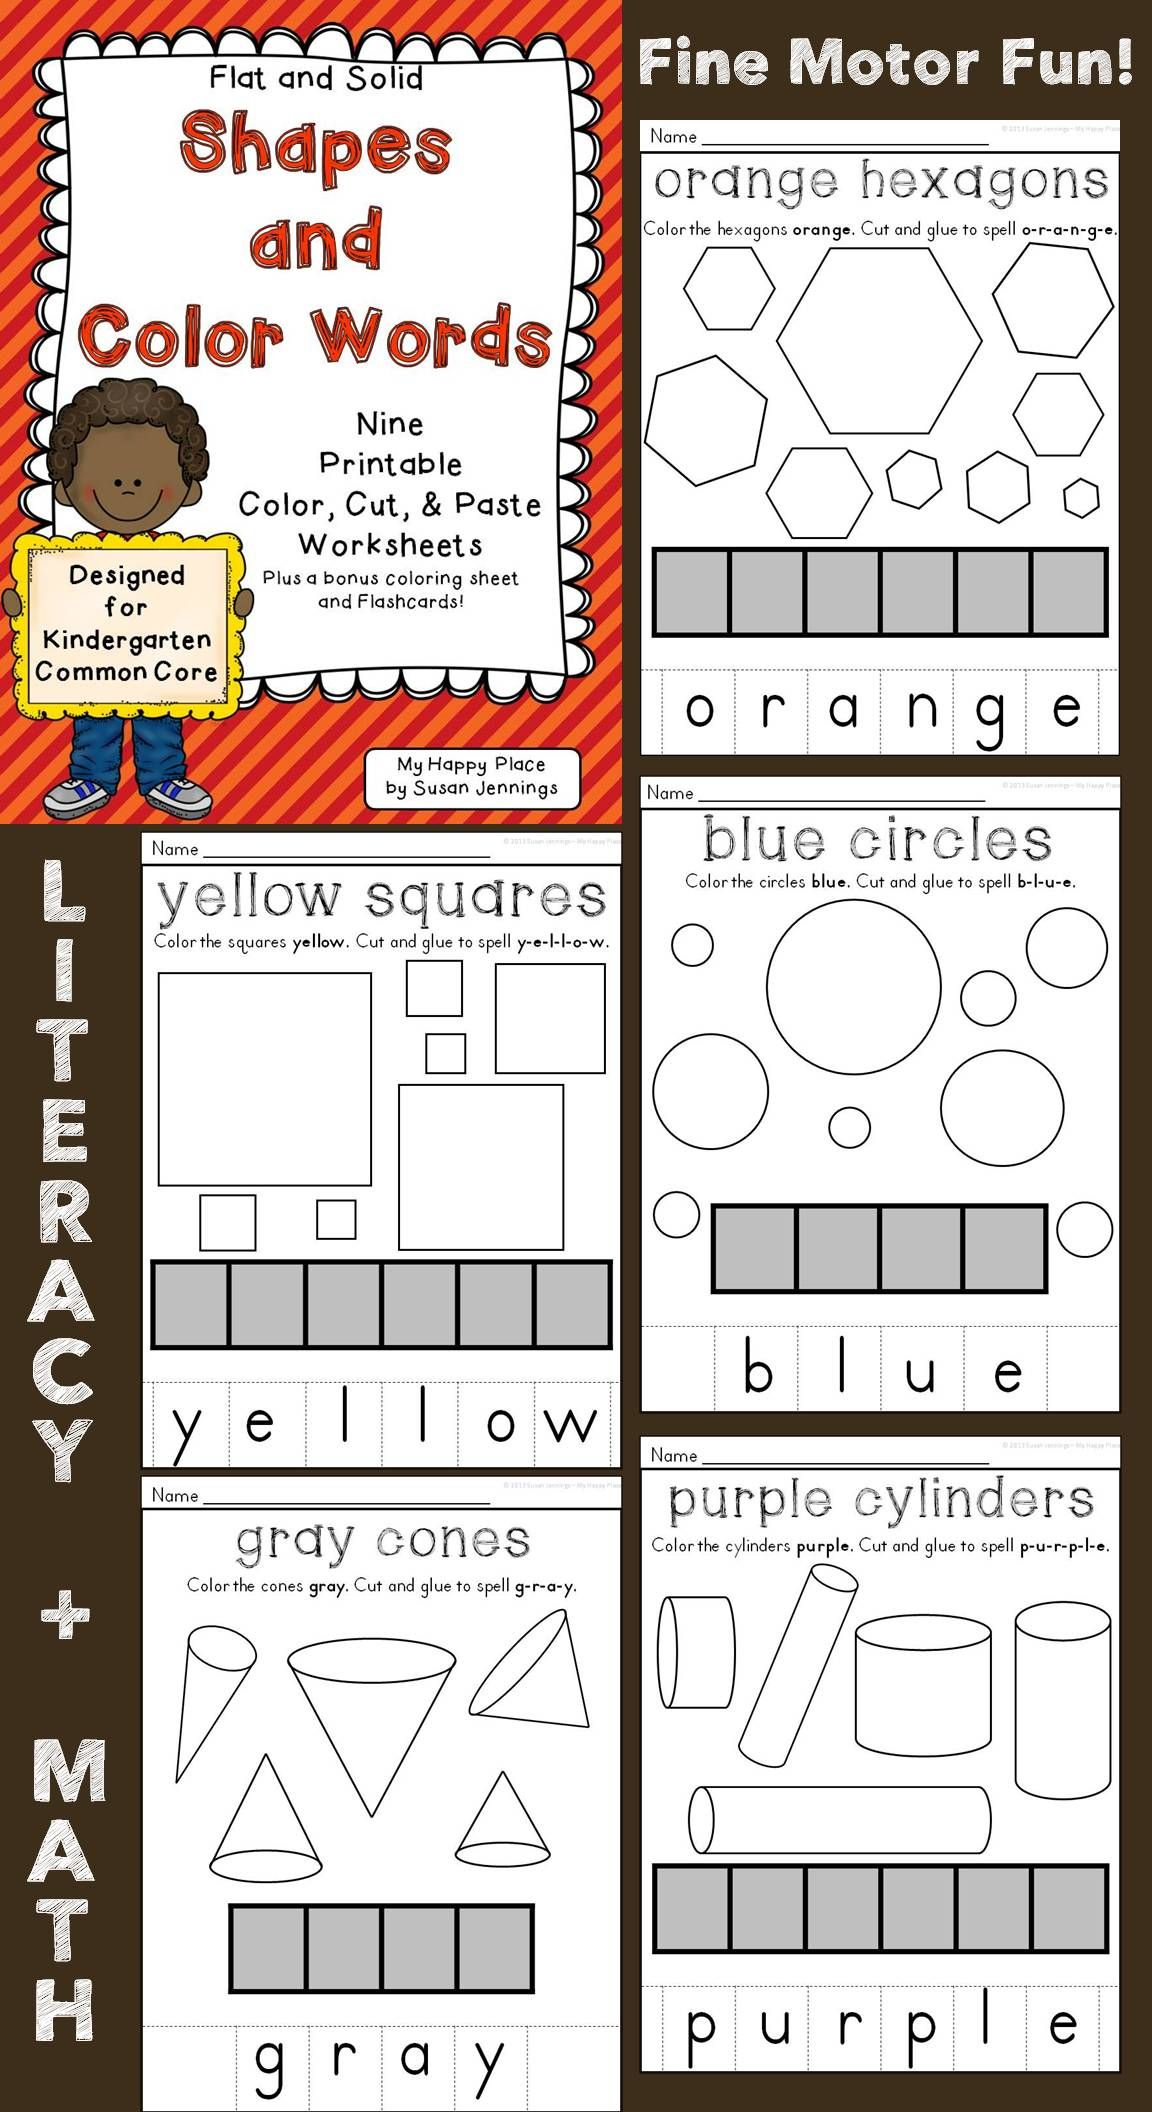 Kindergarten Flat And Solid Shapes Color Cut And Paste Worksheets With Color Words Great For